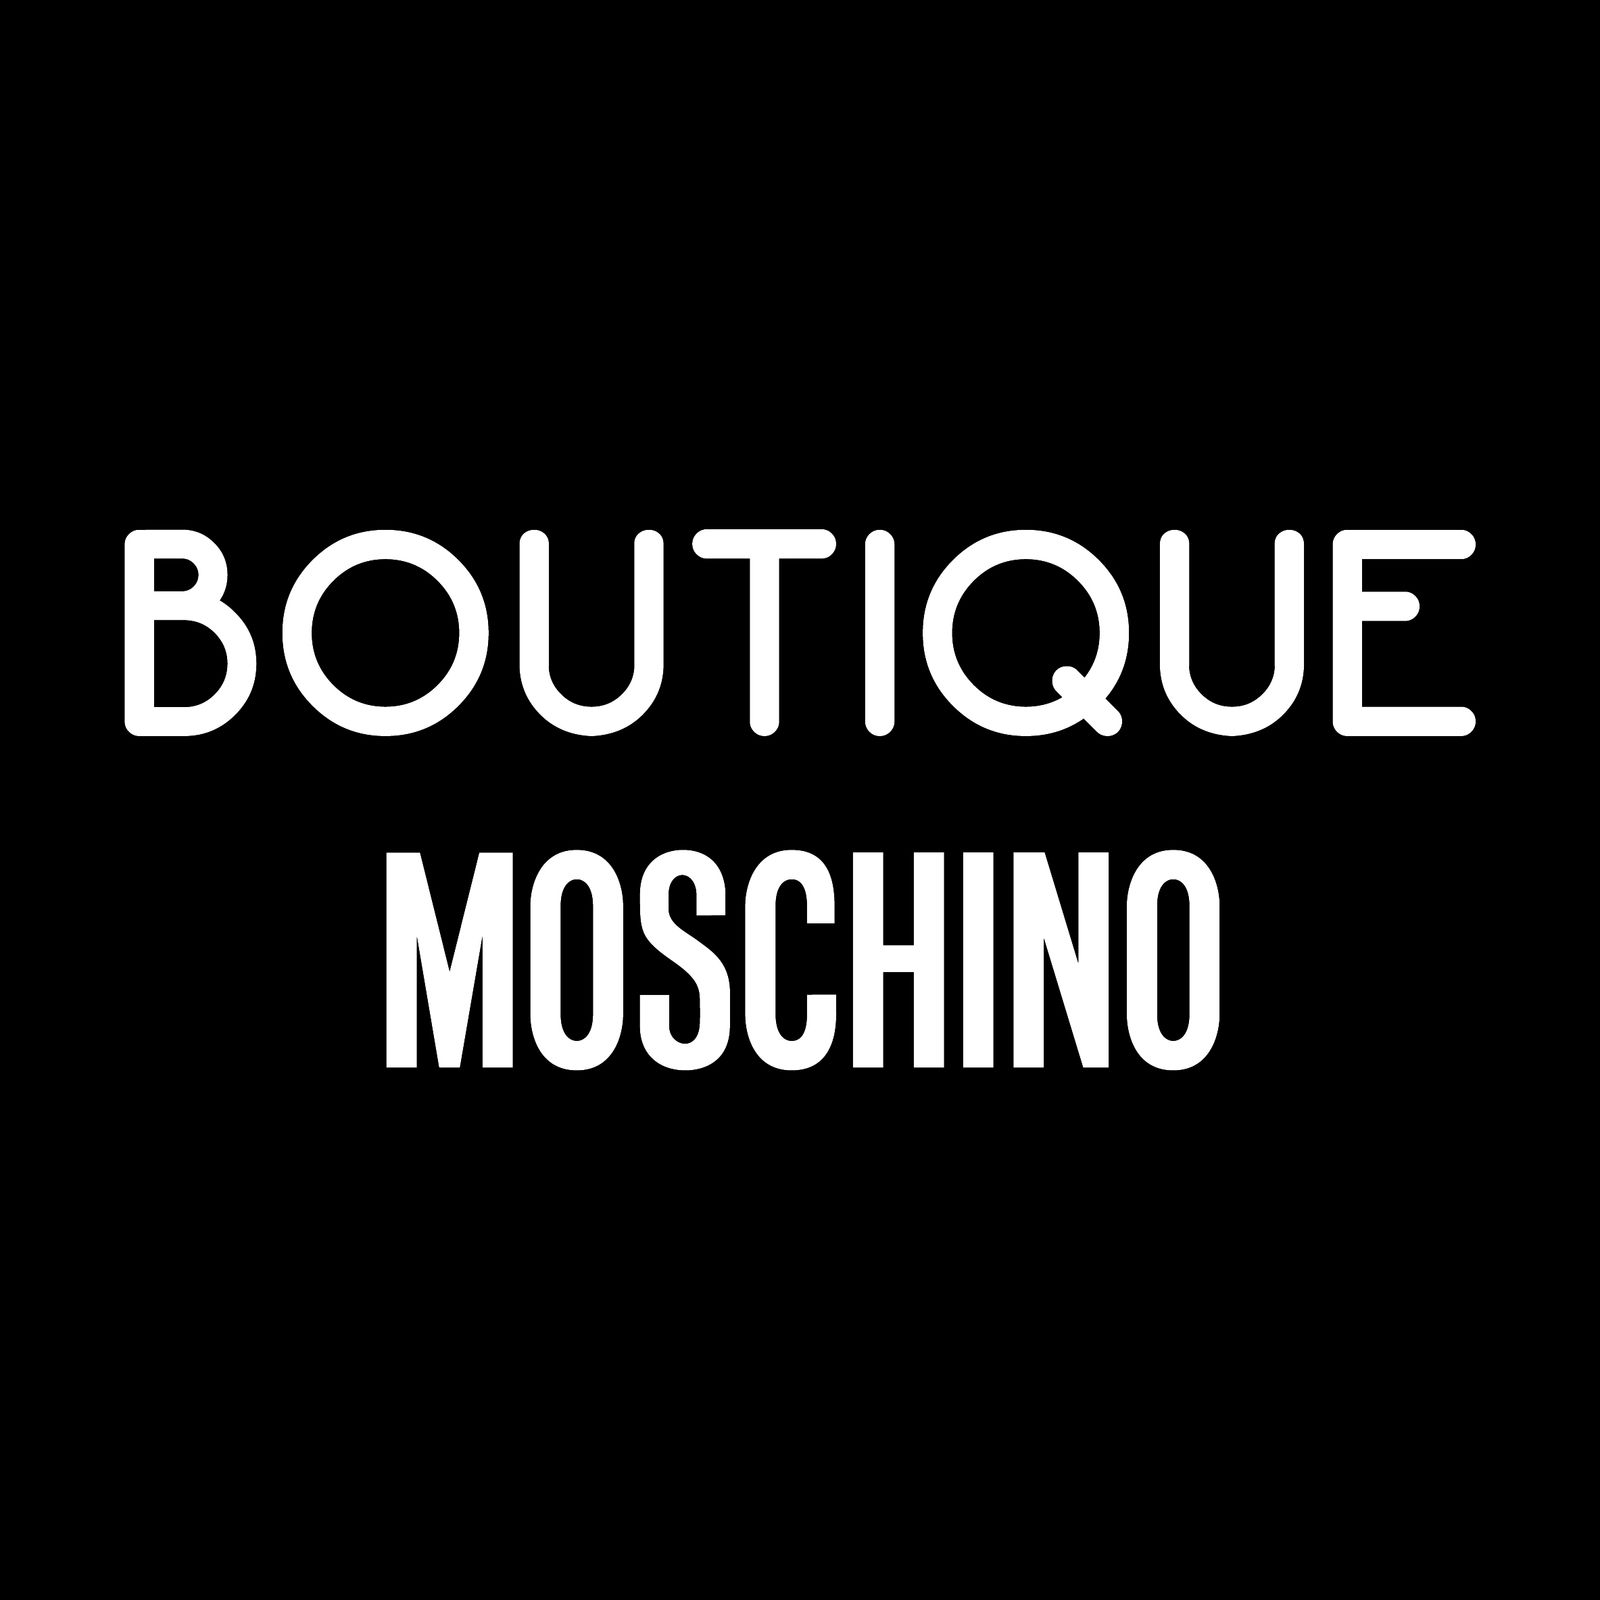 BOUTIQUE MOSCHINO (Image 1)